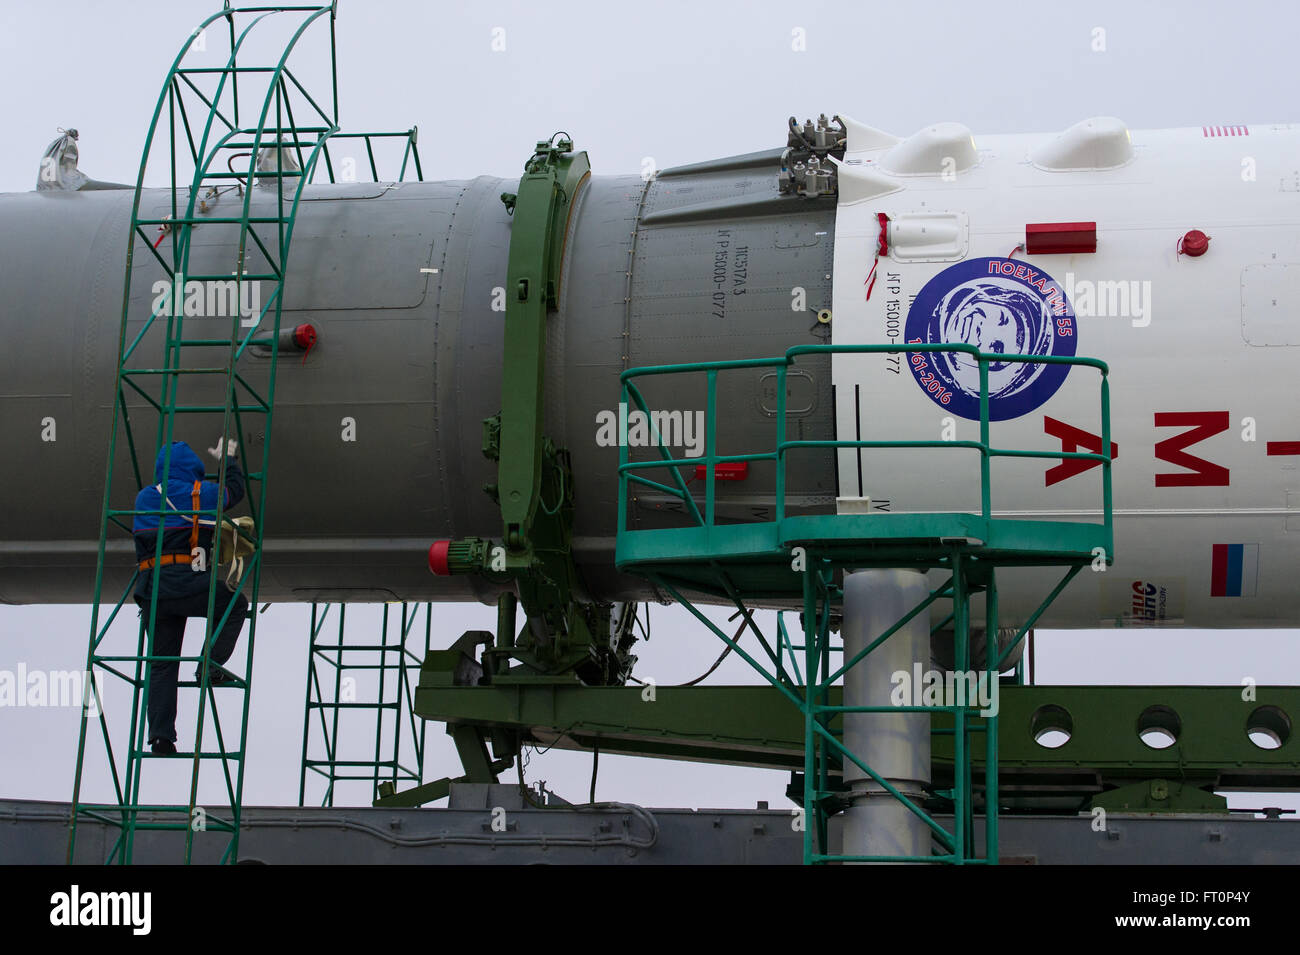 The Soyuz TMA-20M spacecraft is secured at the launch pad after being rolled out by train in the early hours of - Stock Image